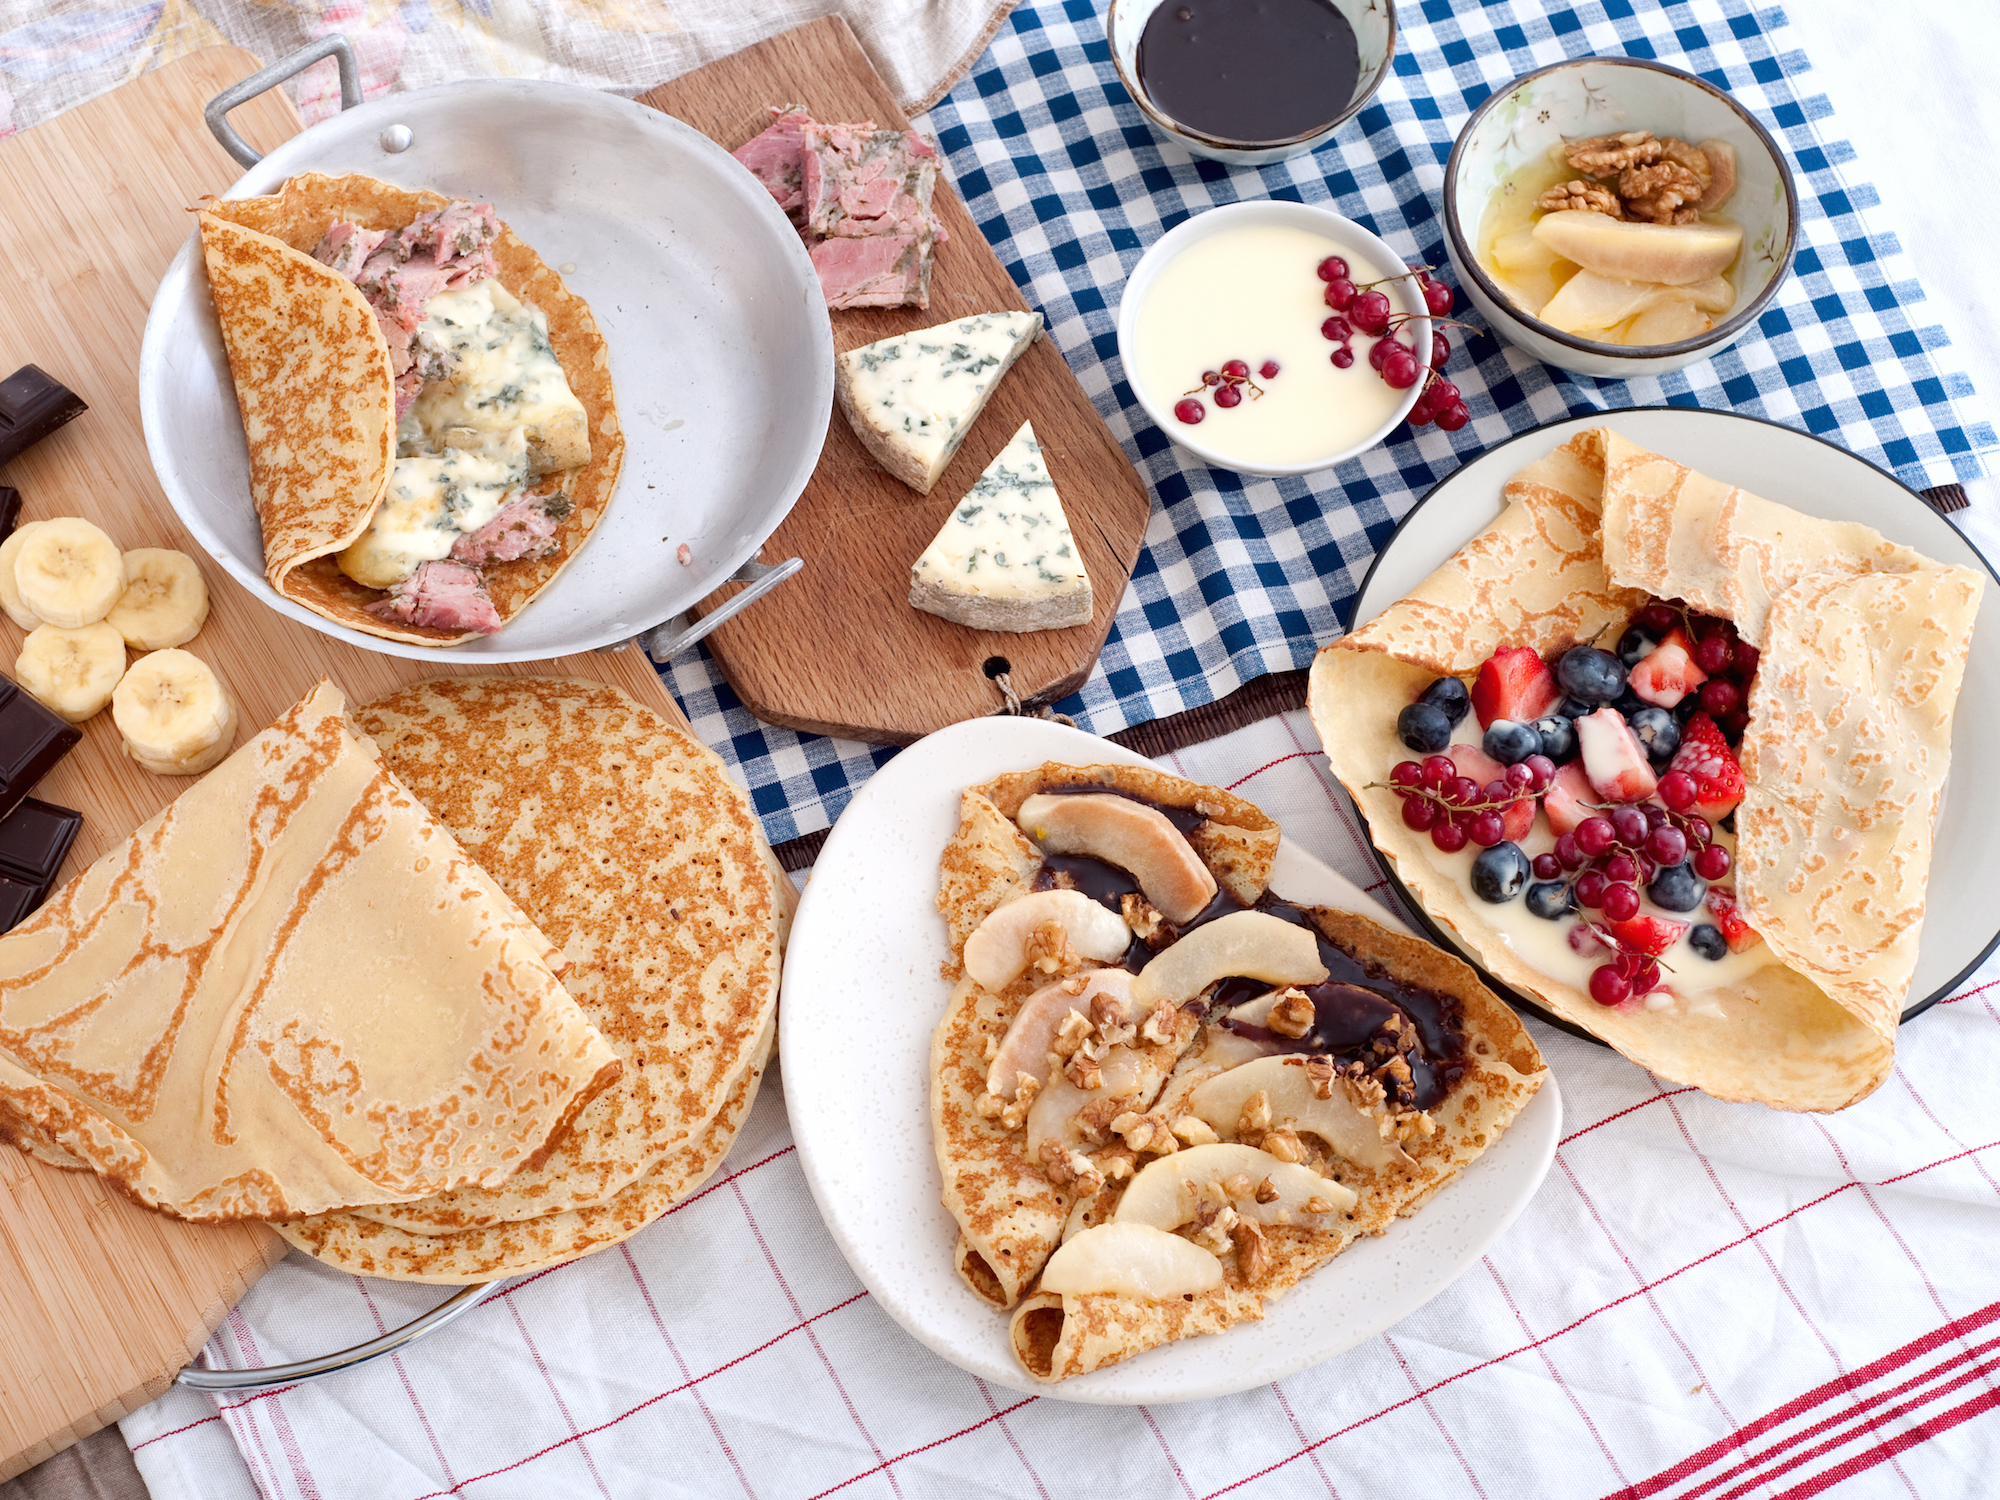 echow-to-make-almond-meal-crepes